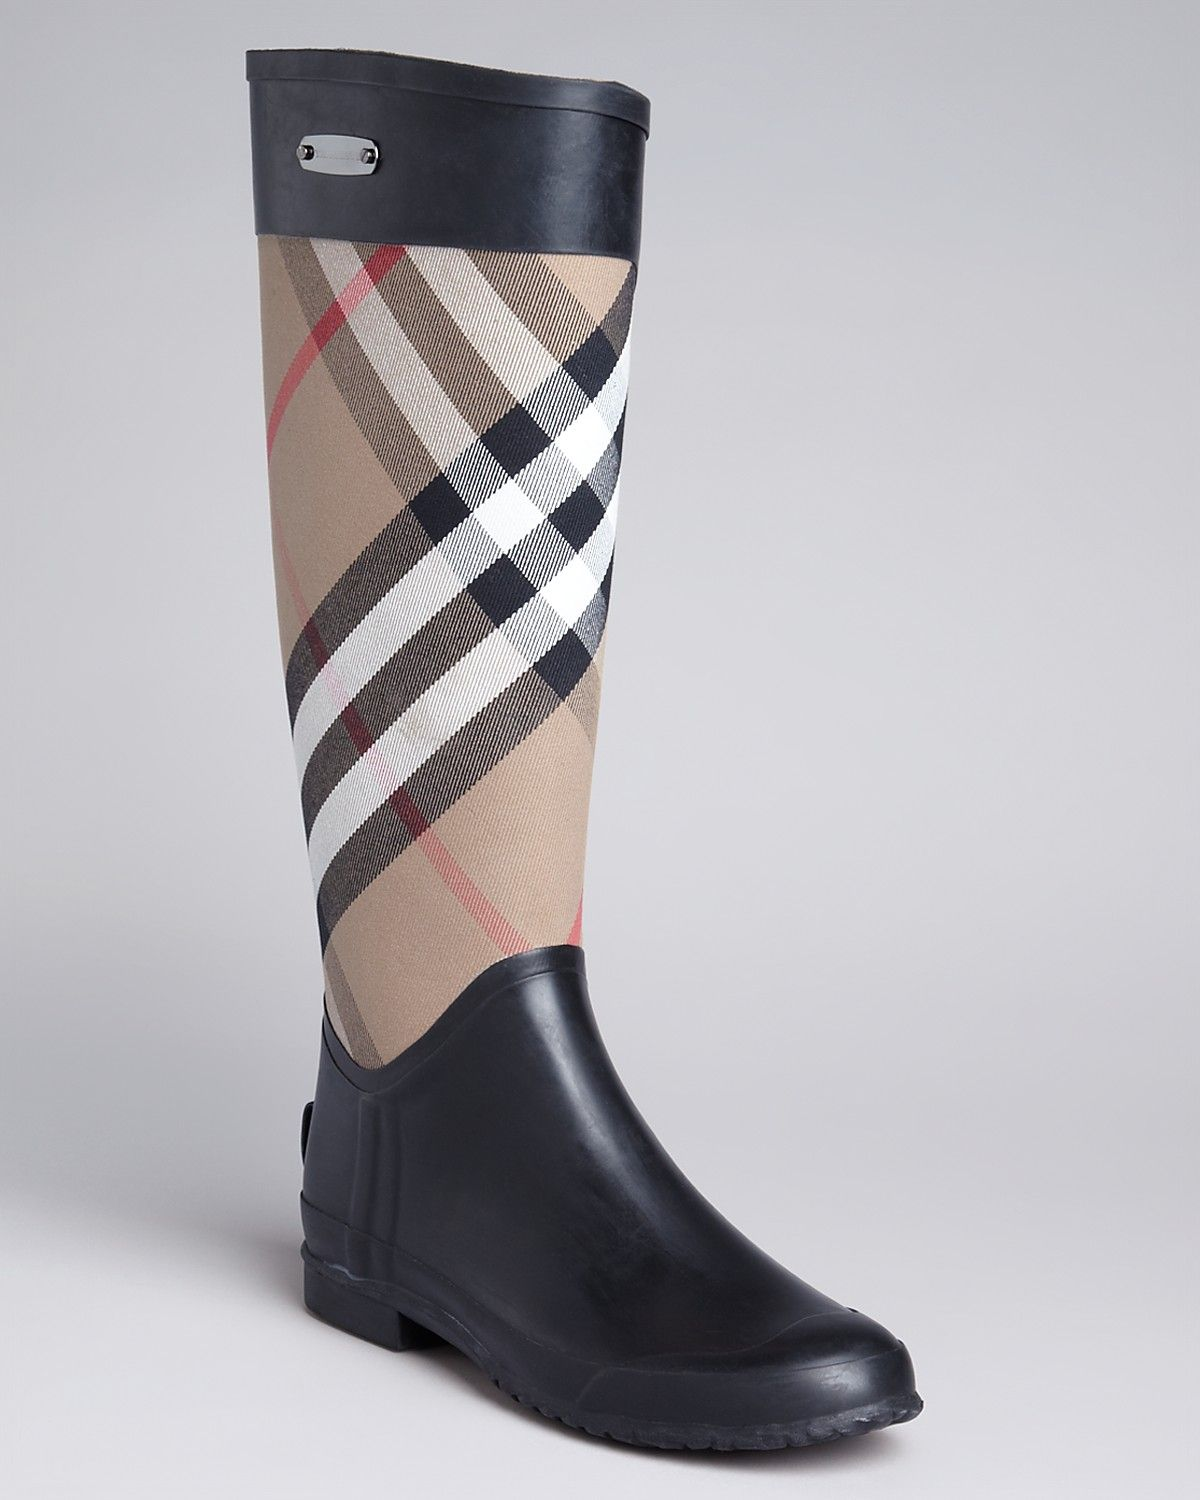 Burberry Rain Boots - Clemence Check | Bloomingdales | Yes, please ...